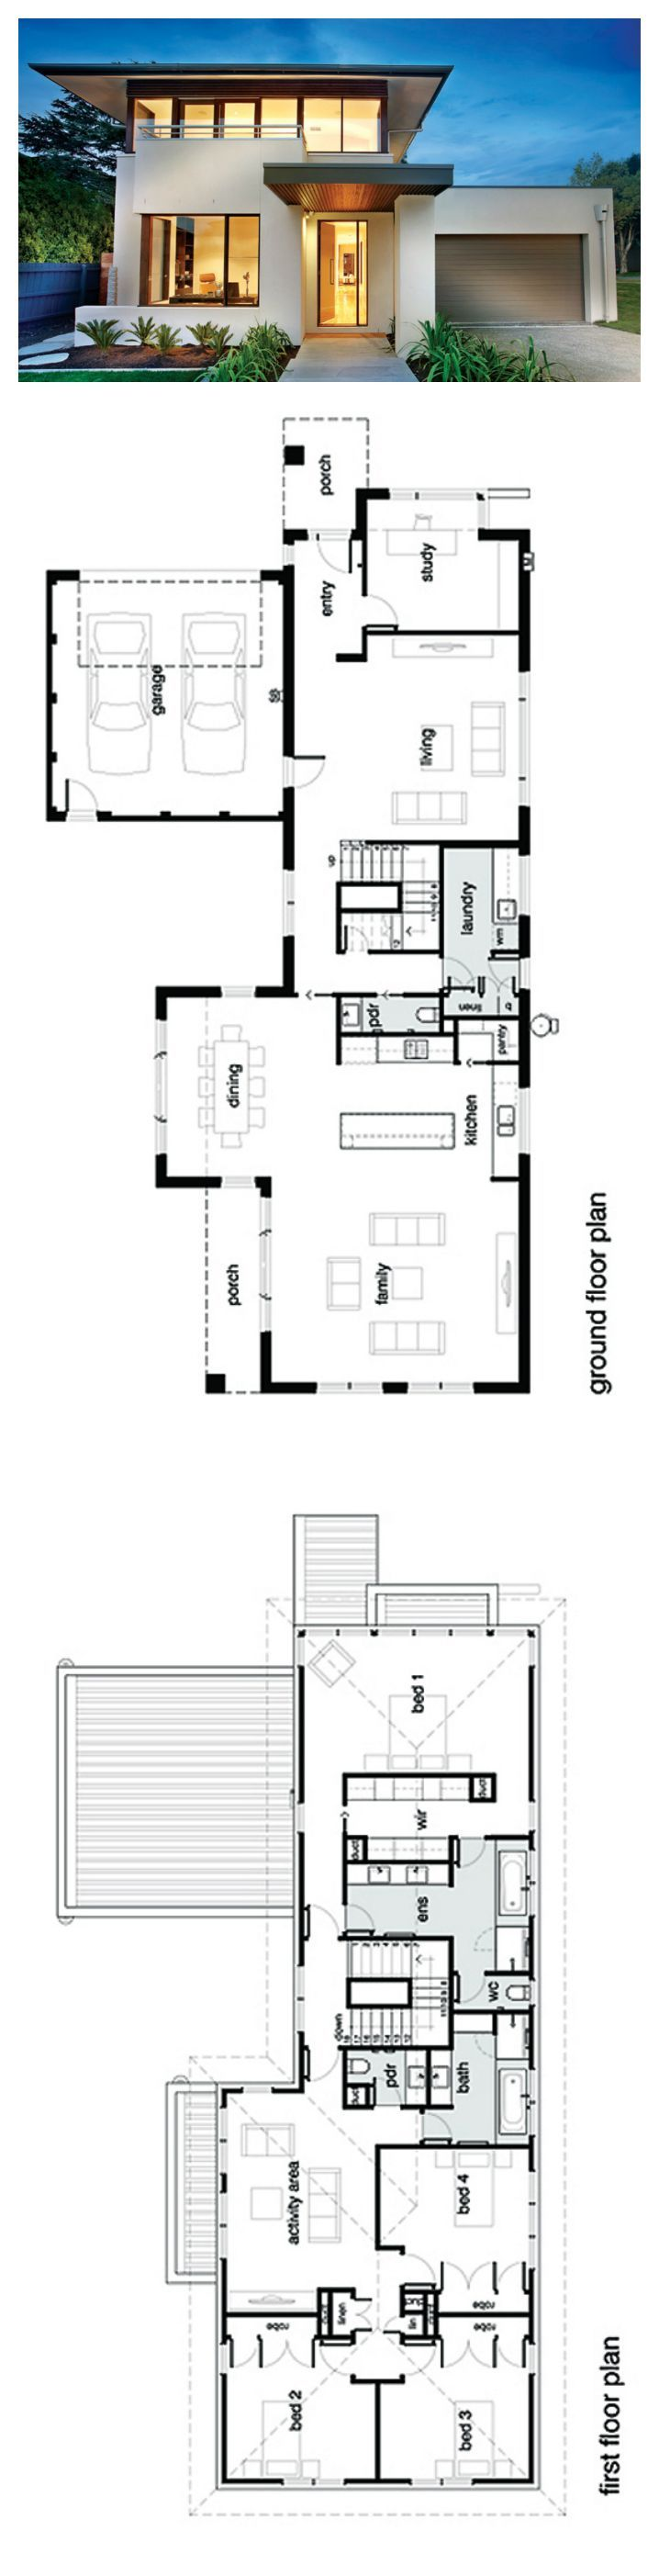 Best 25 modern house plans ideas on pinterest modern for 2 story house blueprints